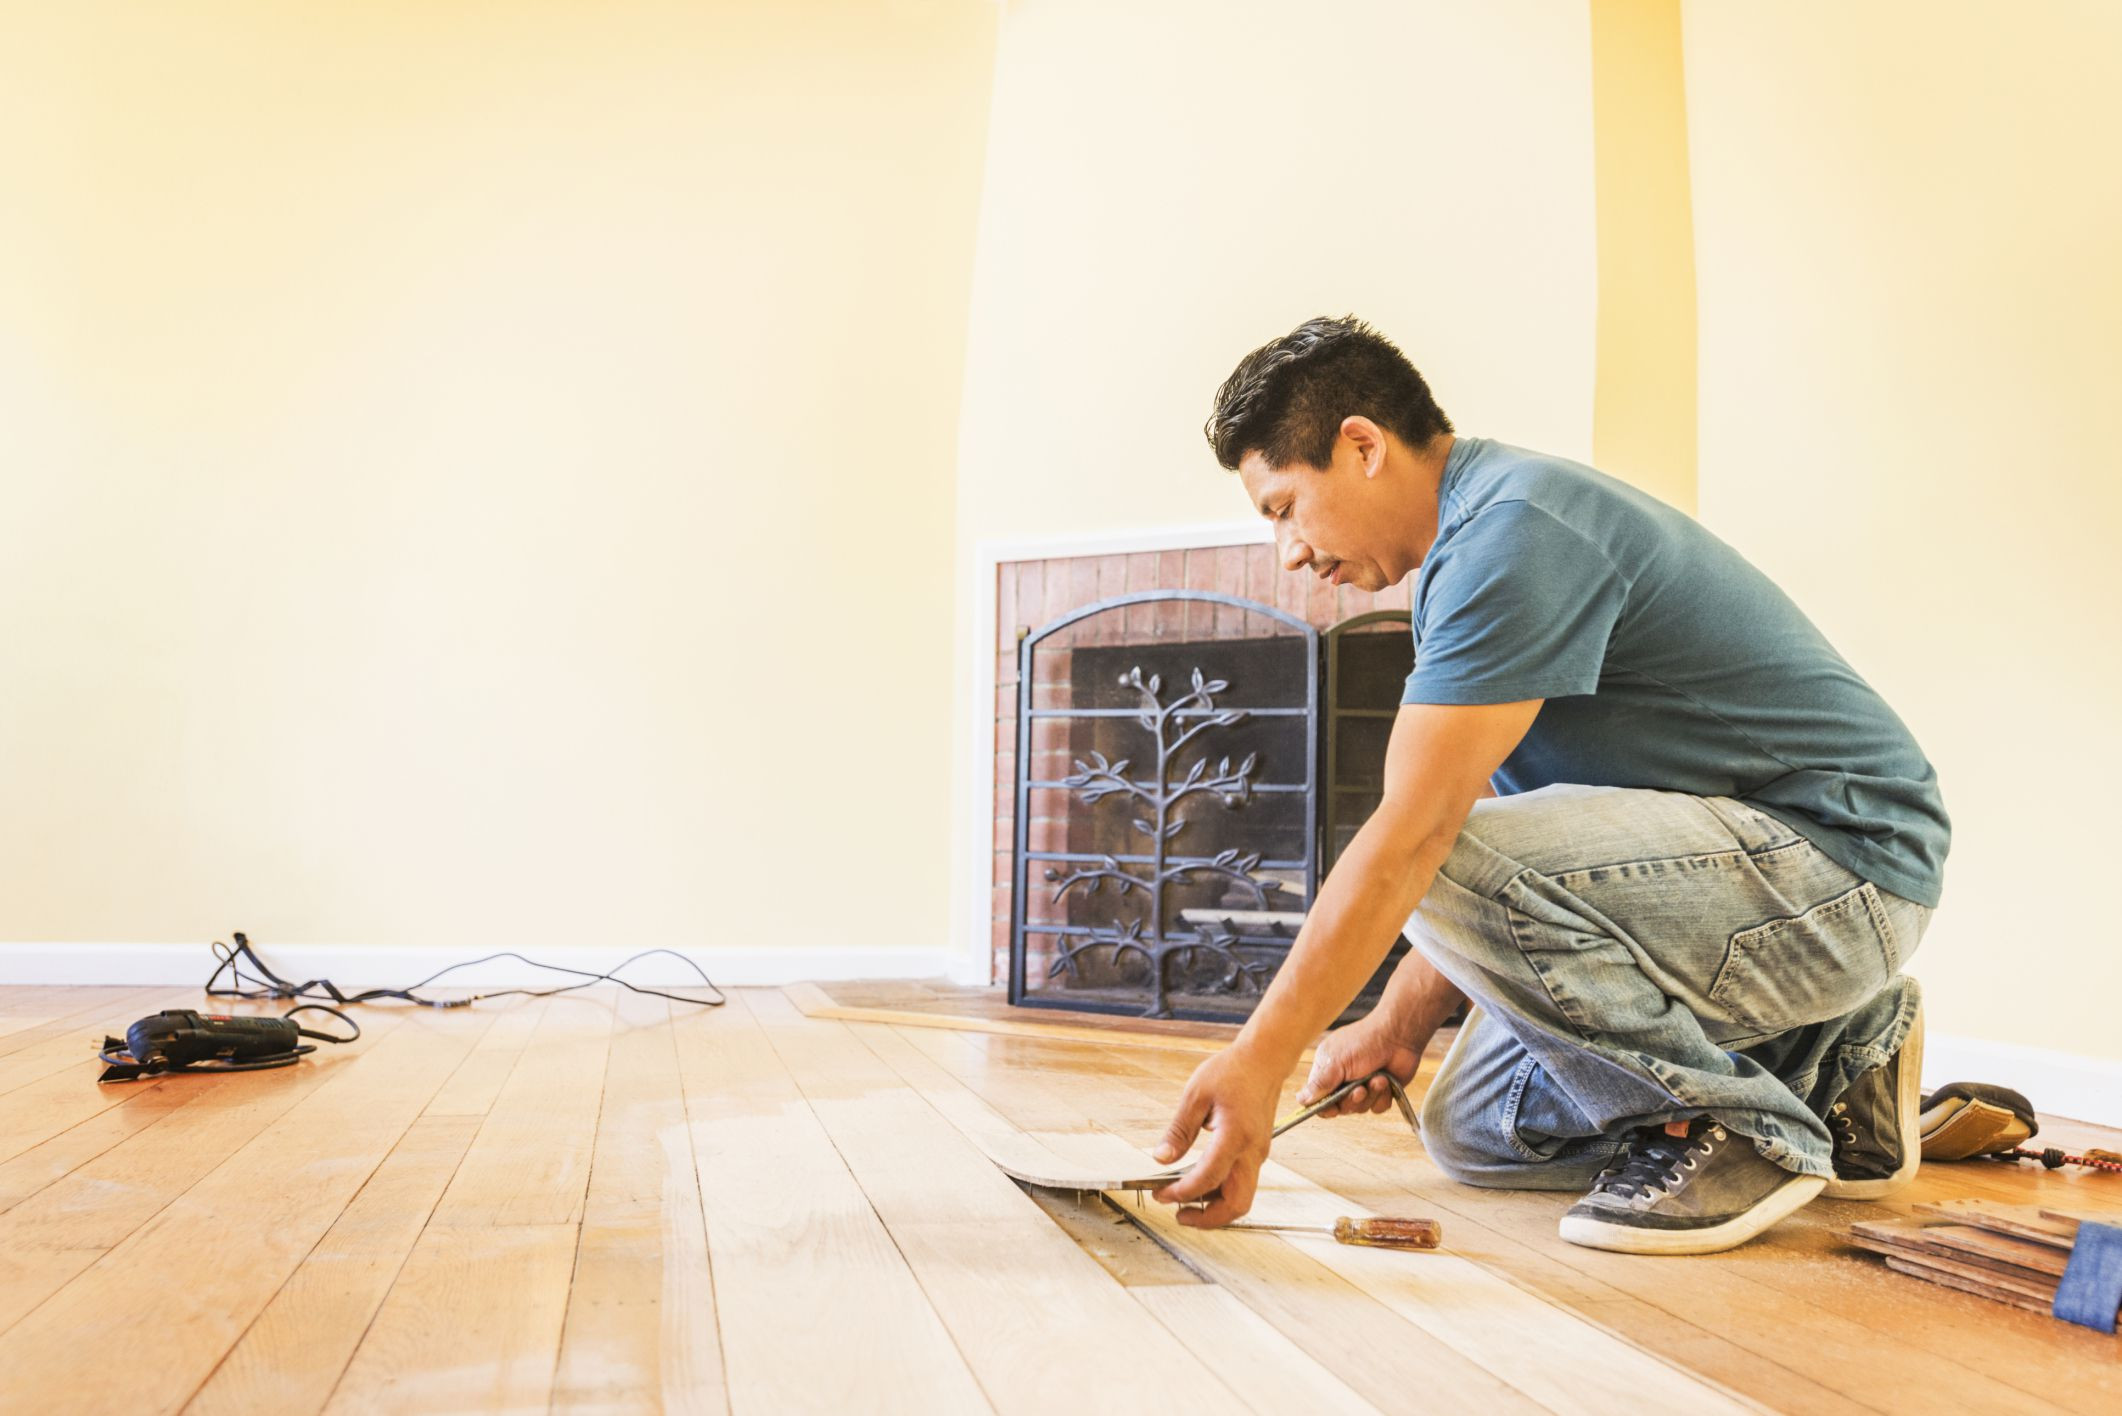 cost to refinish hardwood floors atlanta of solid hardwood flooring costs for professional vs diy throughout installwoodflooring 592016327 56684d6f3df78ce1610a598a